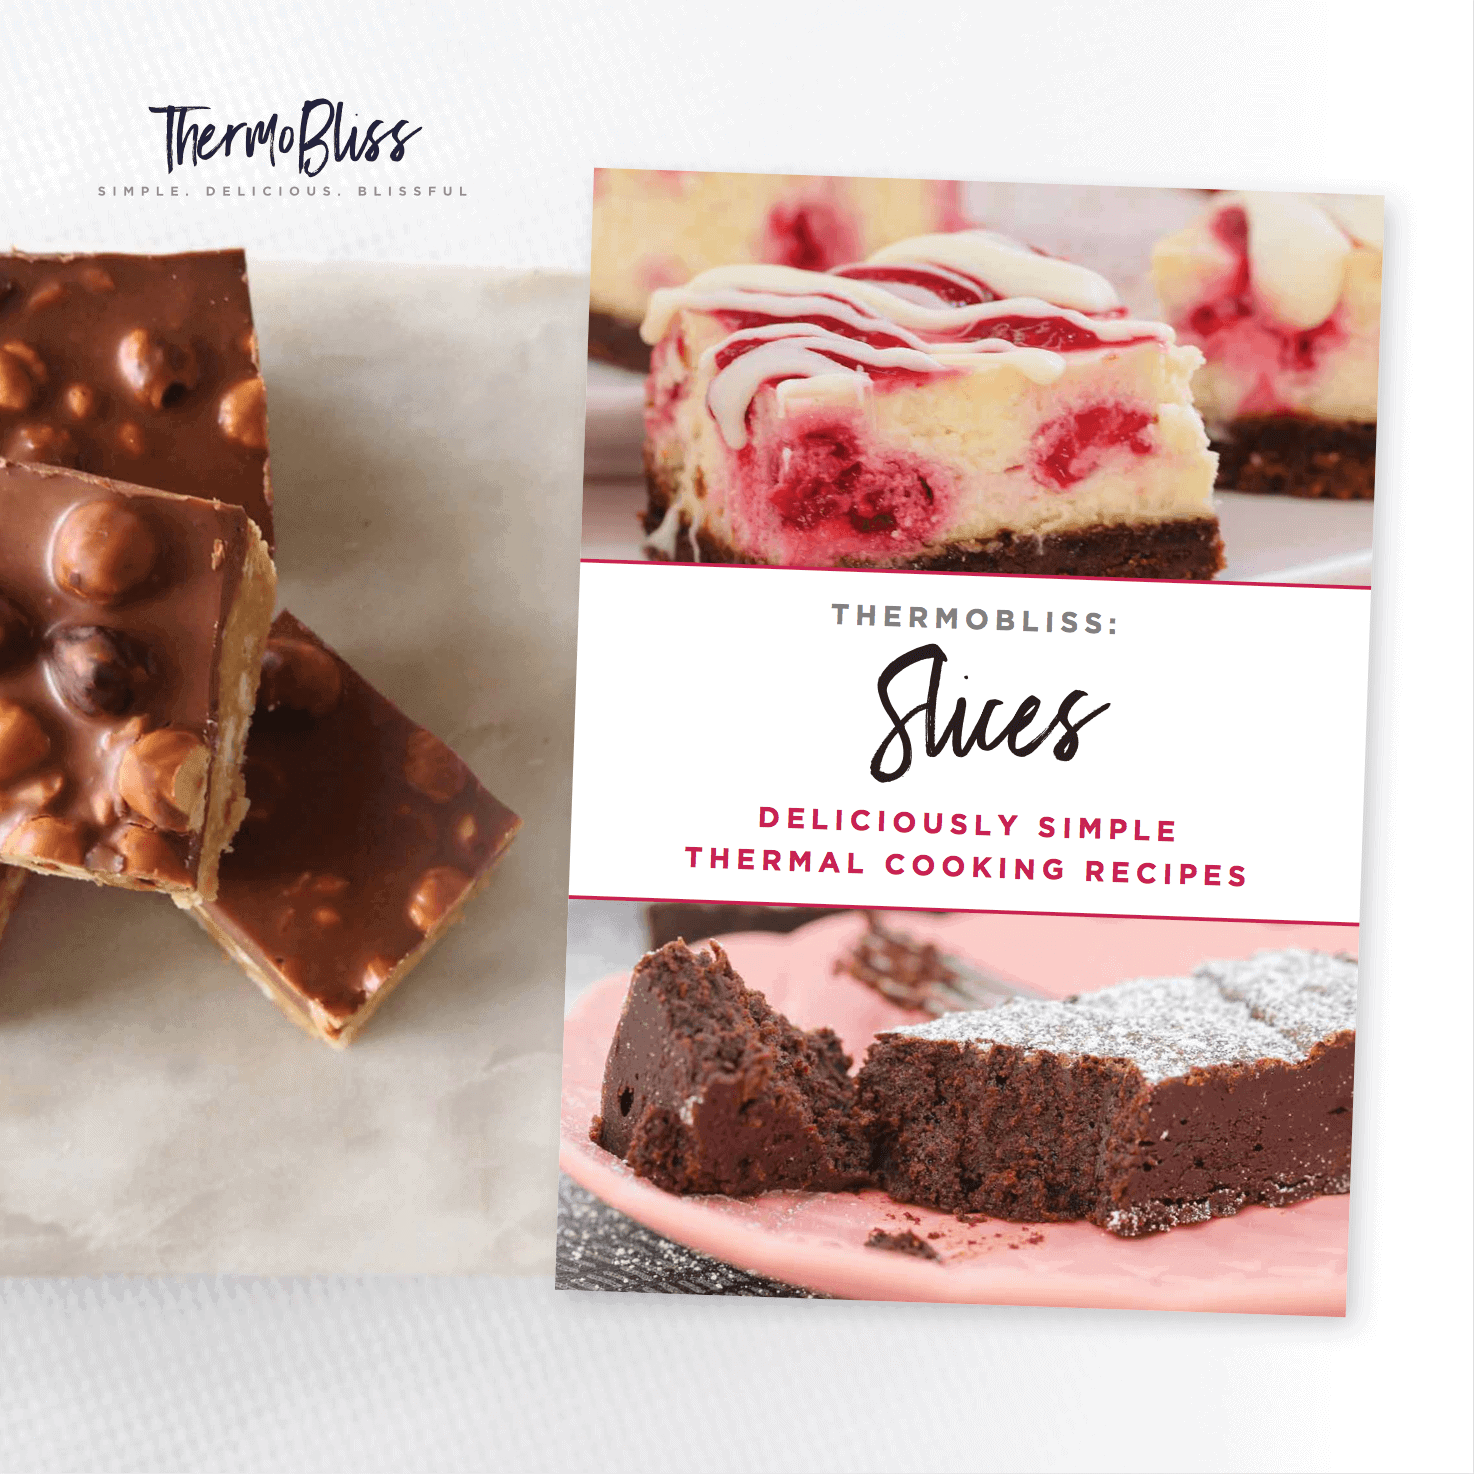 Pieces of a chocolate slice beside a Thermomix Slices recipe book